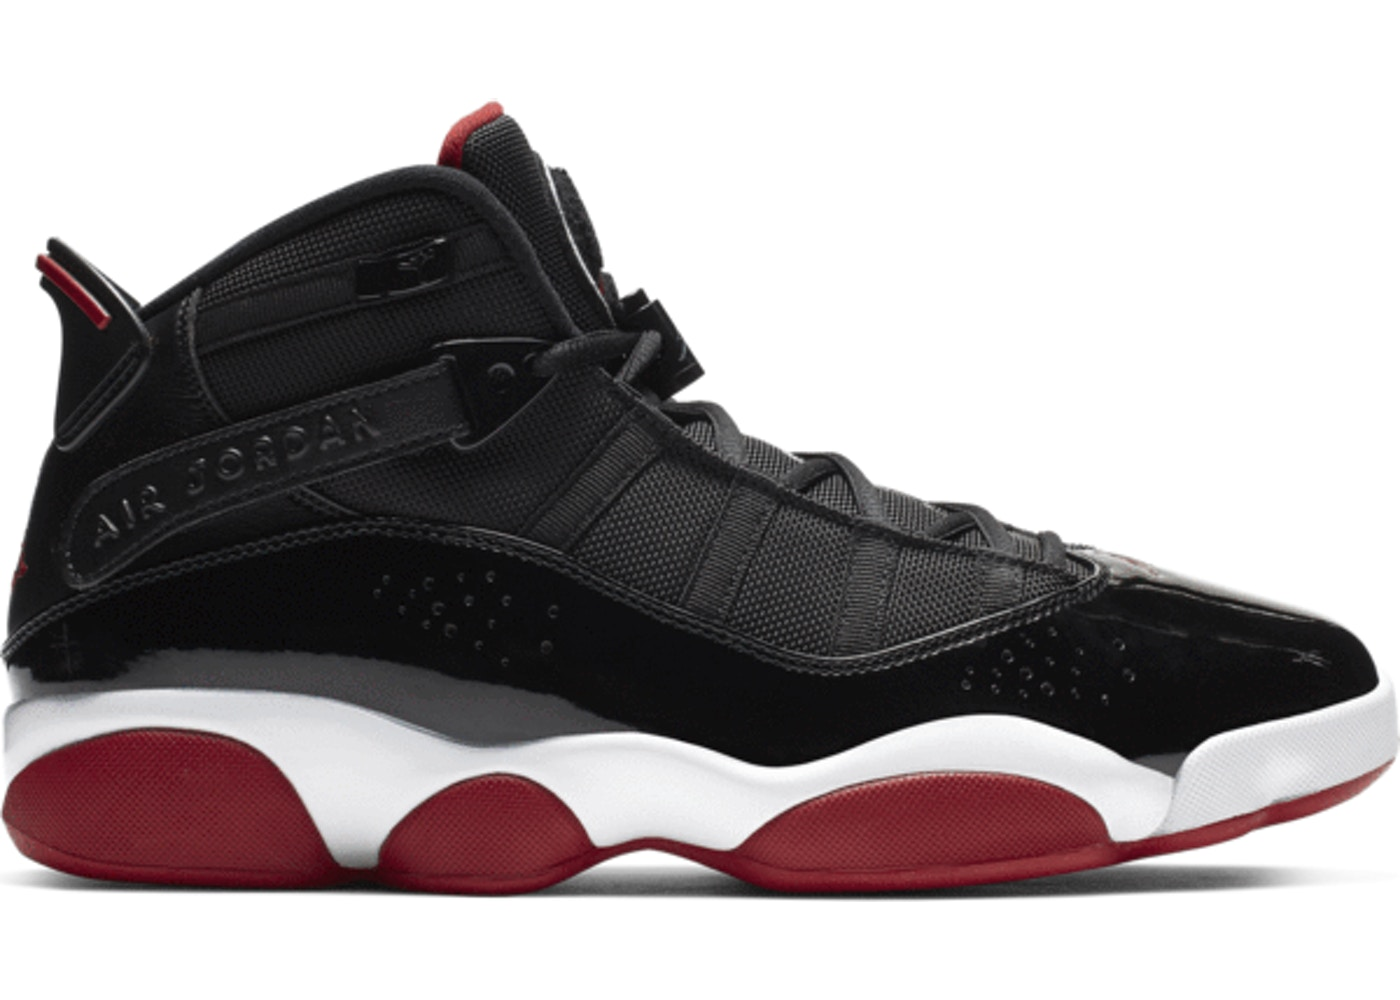 purchase cheap b93d8 223ee Jordan 6 Rings Black Varsity Red